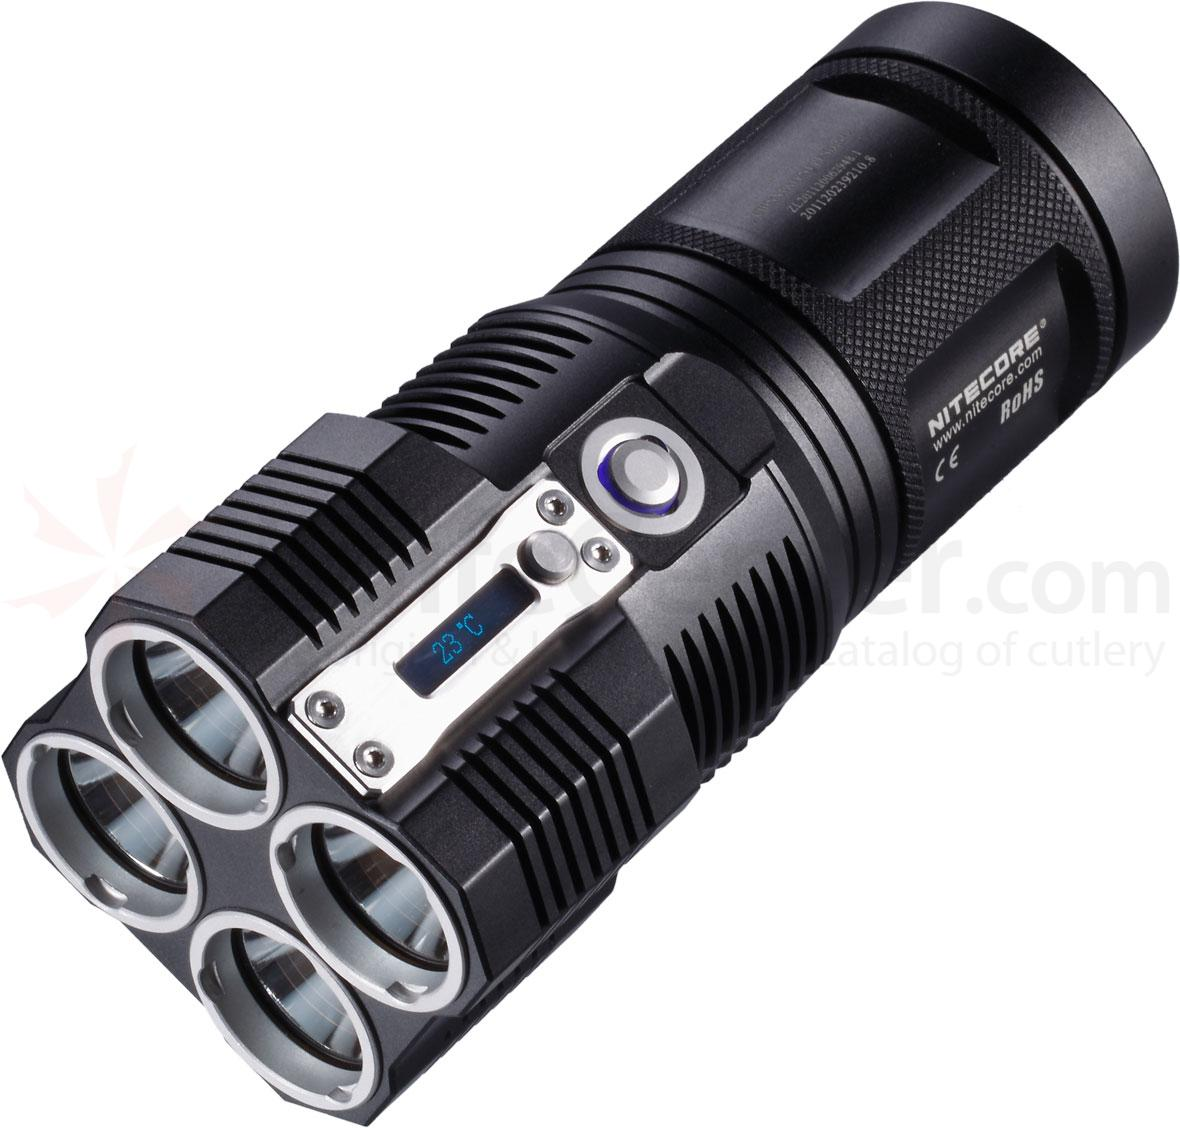 NITECORE Tiny Monster Series TM26 CR123A LED Flashlight, 3500 Max Lumens